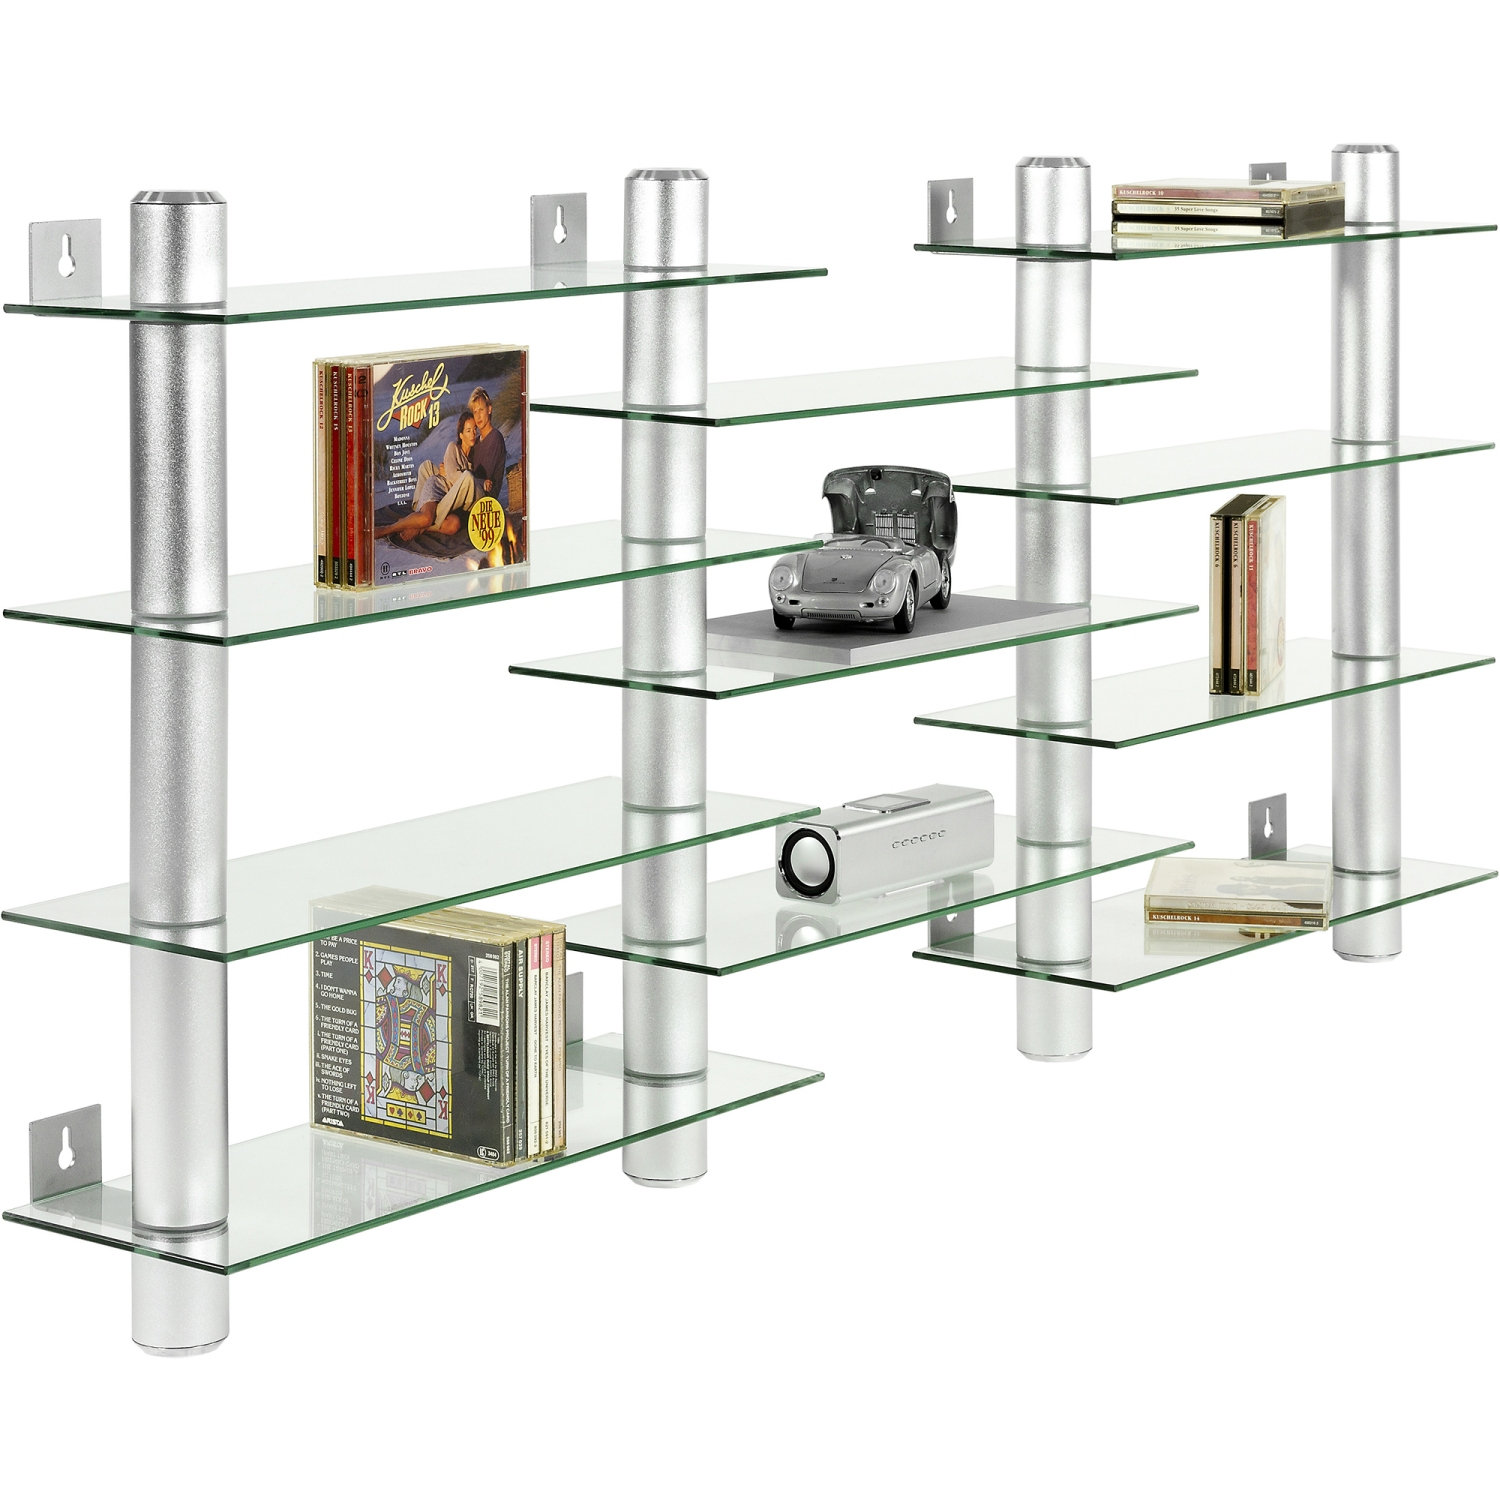 stilista design glas aluminium cd dvd regal wandregal f 300 cds ebay. Black Bedroom Furniture Sets. Home Design Ideas